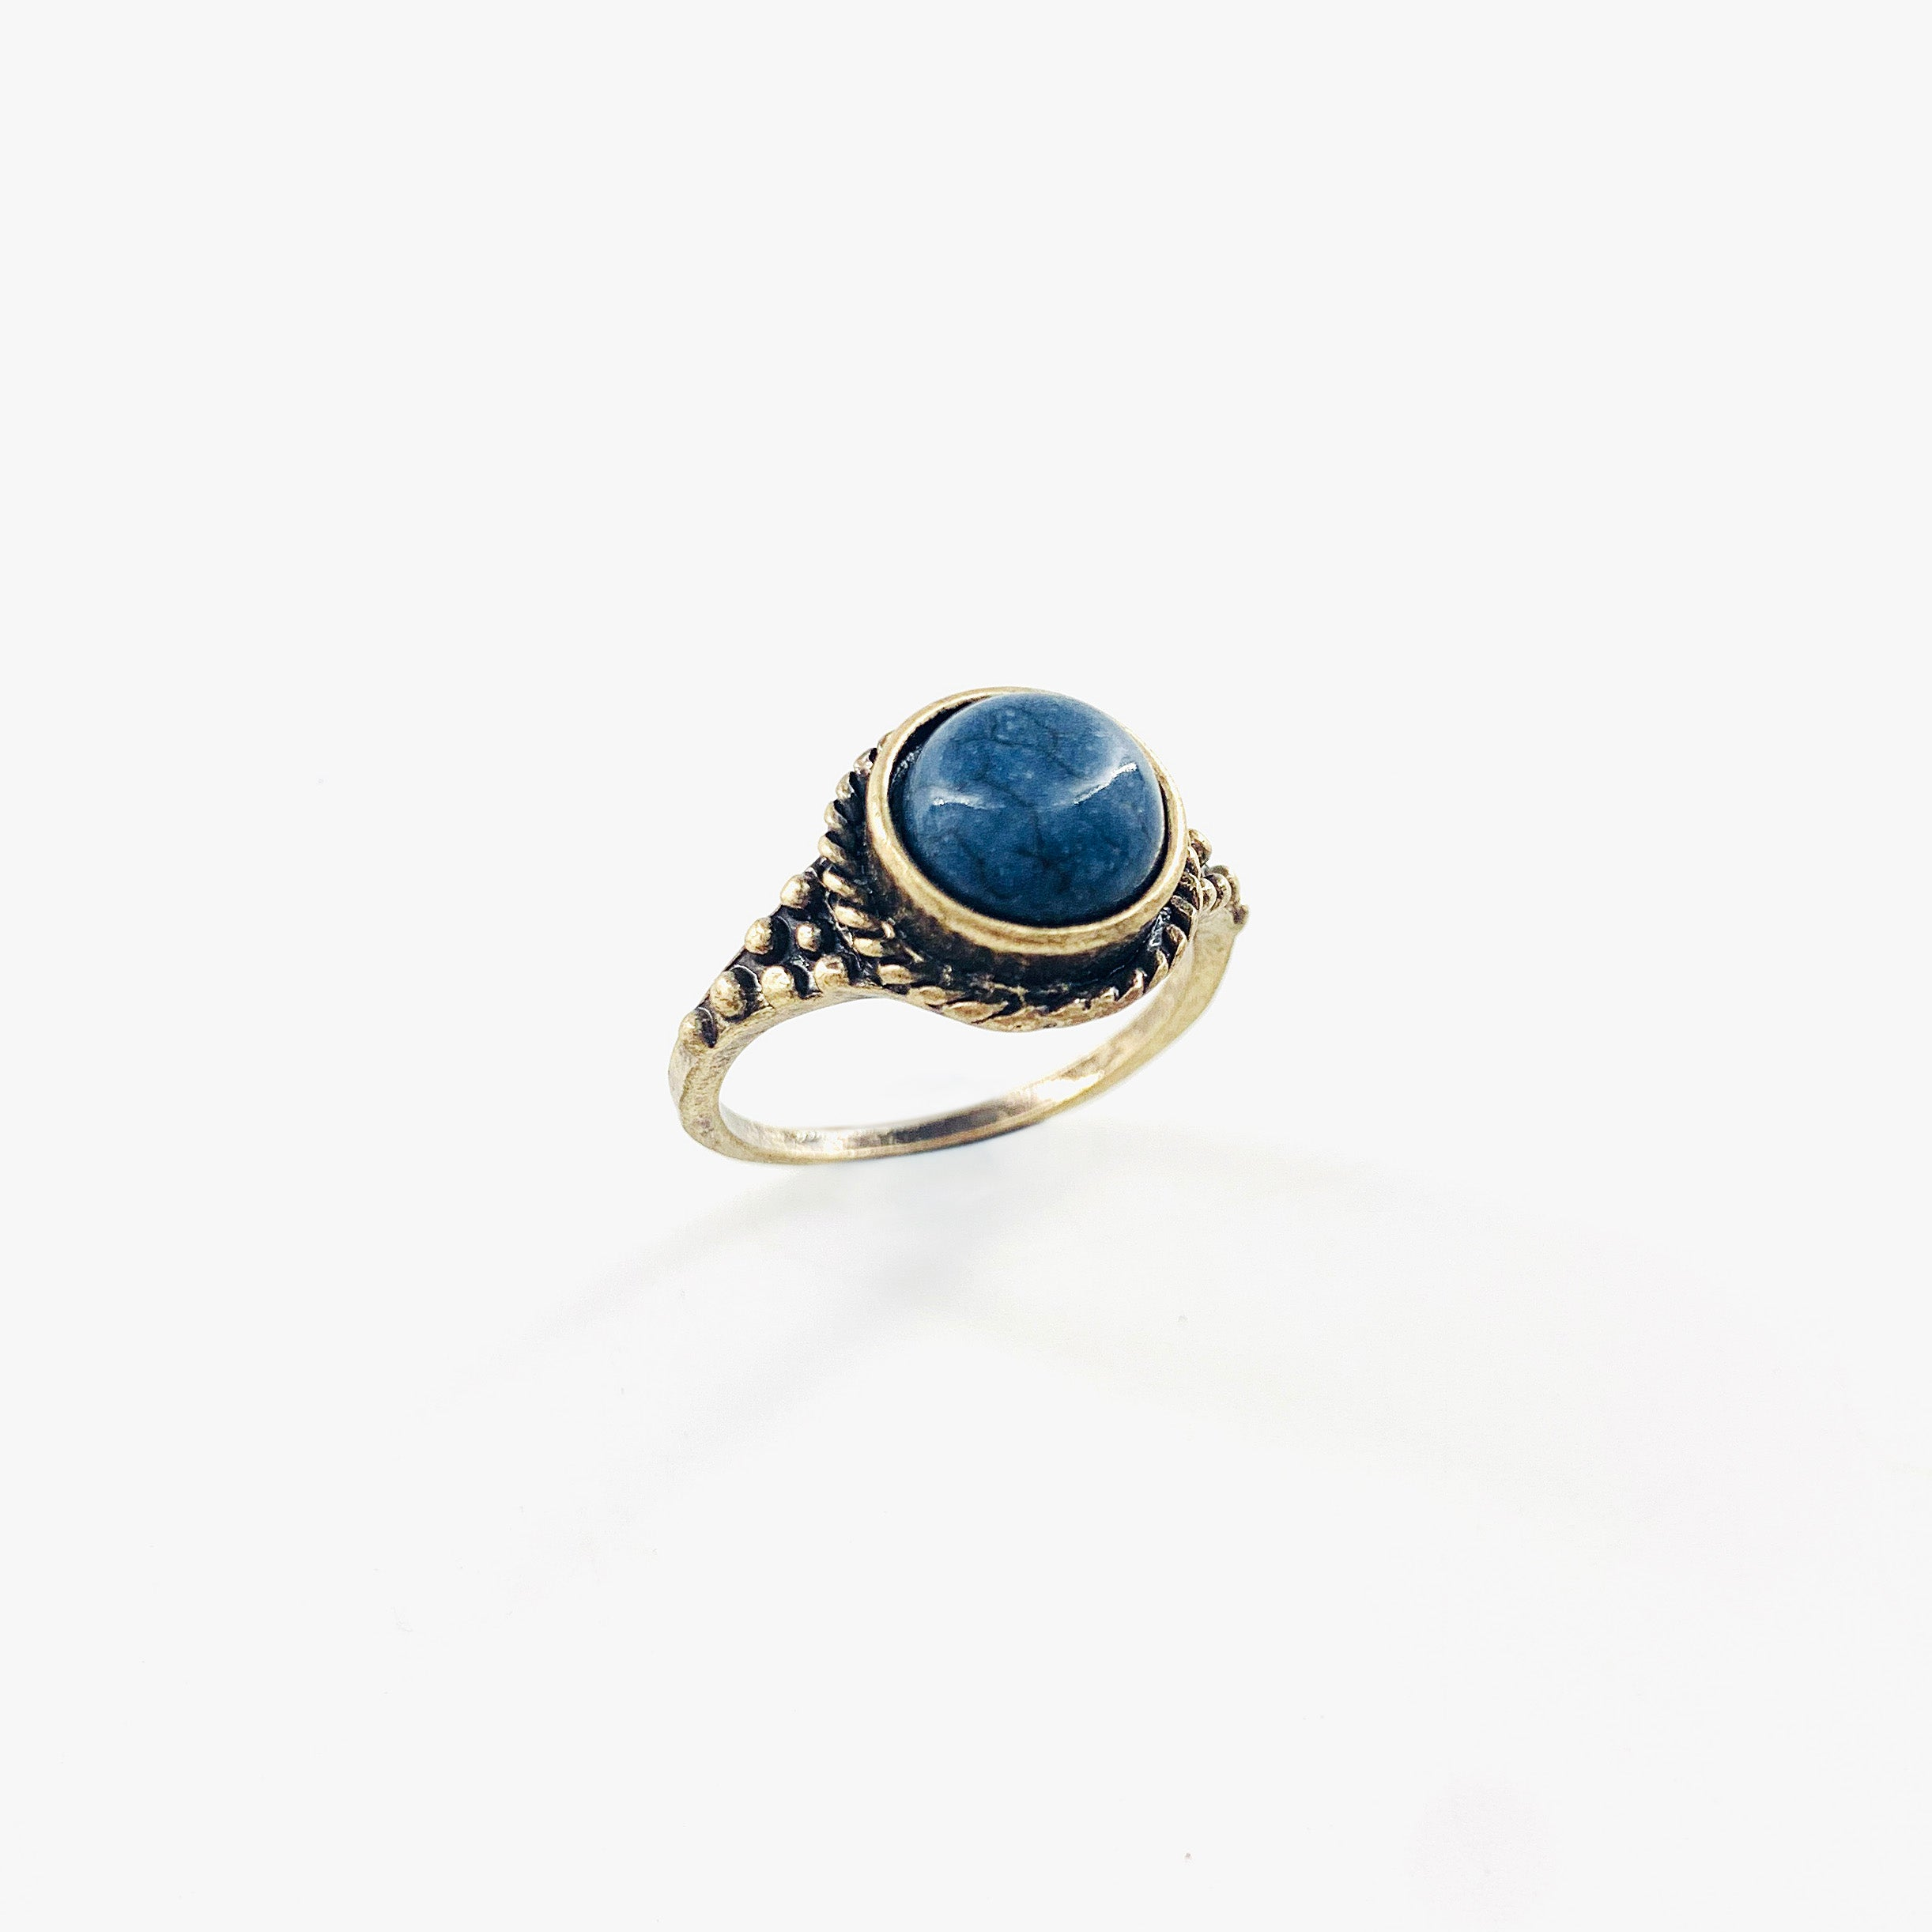 Vintage-styled ring with small blue stone and delicate band